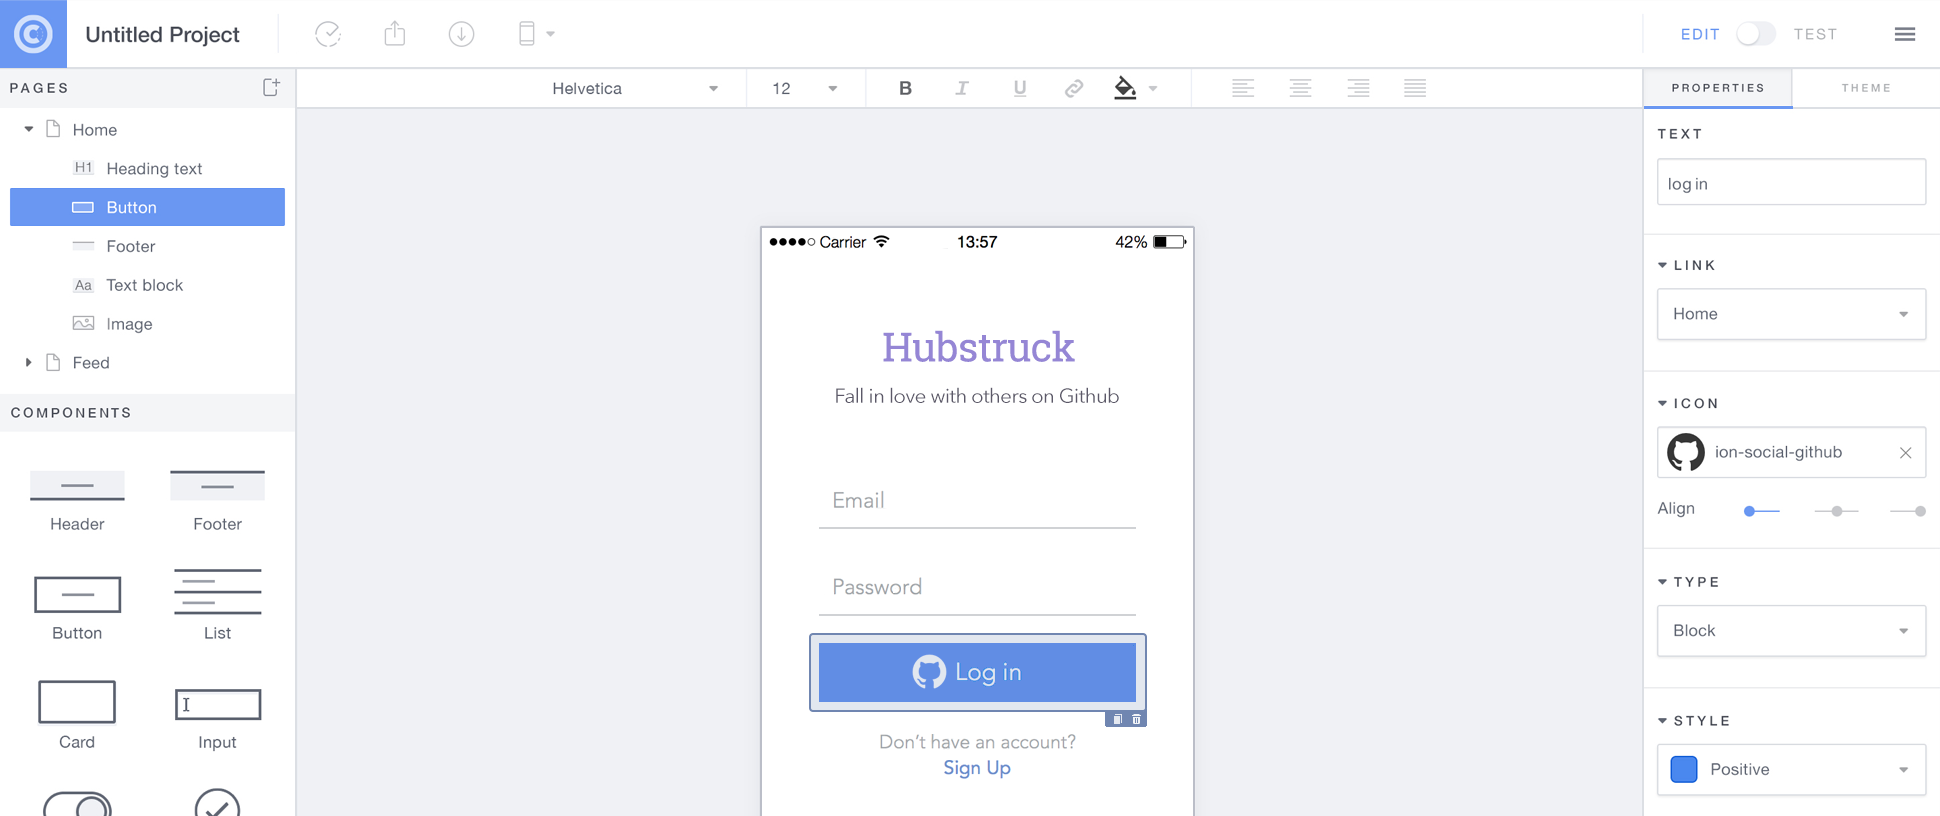 angularjs external template - building hybrid apps with angularjs and ionic